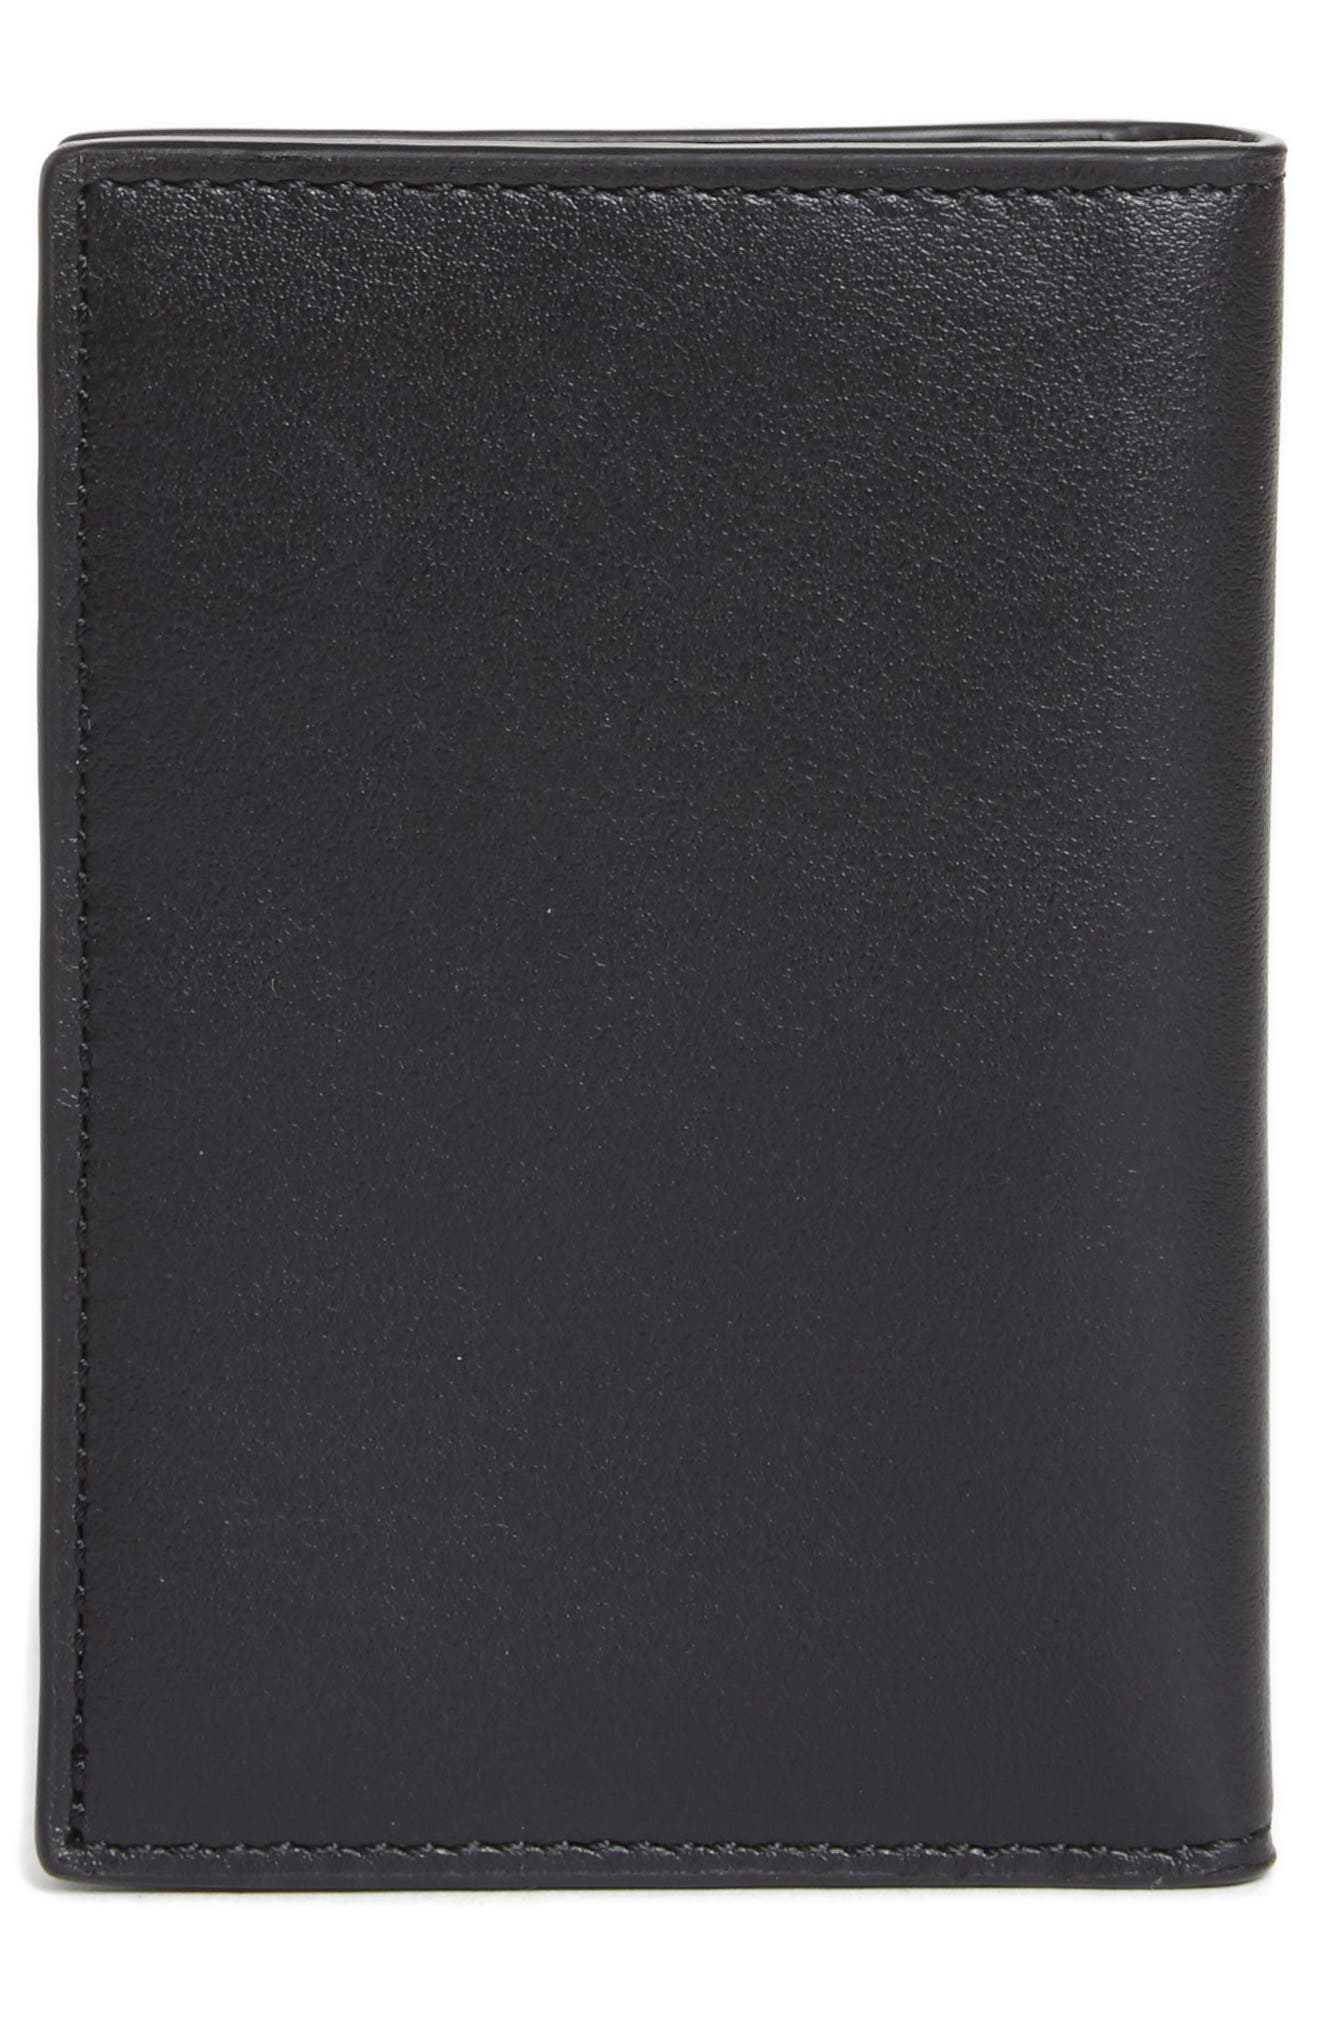 Color Accent Leather Wallet,                             Alternate thumbnail 3, color,                             Black